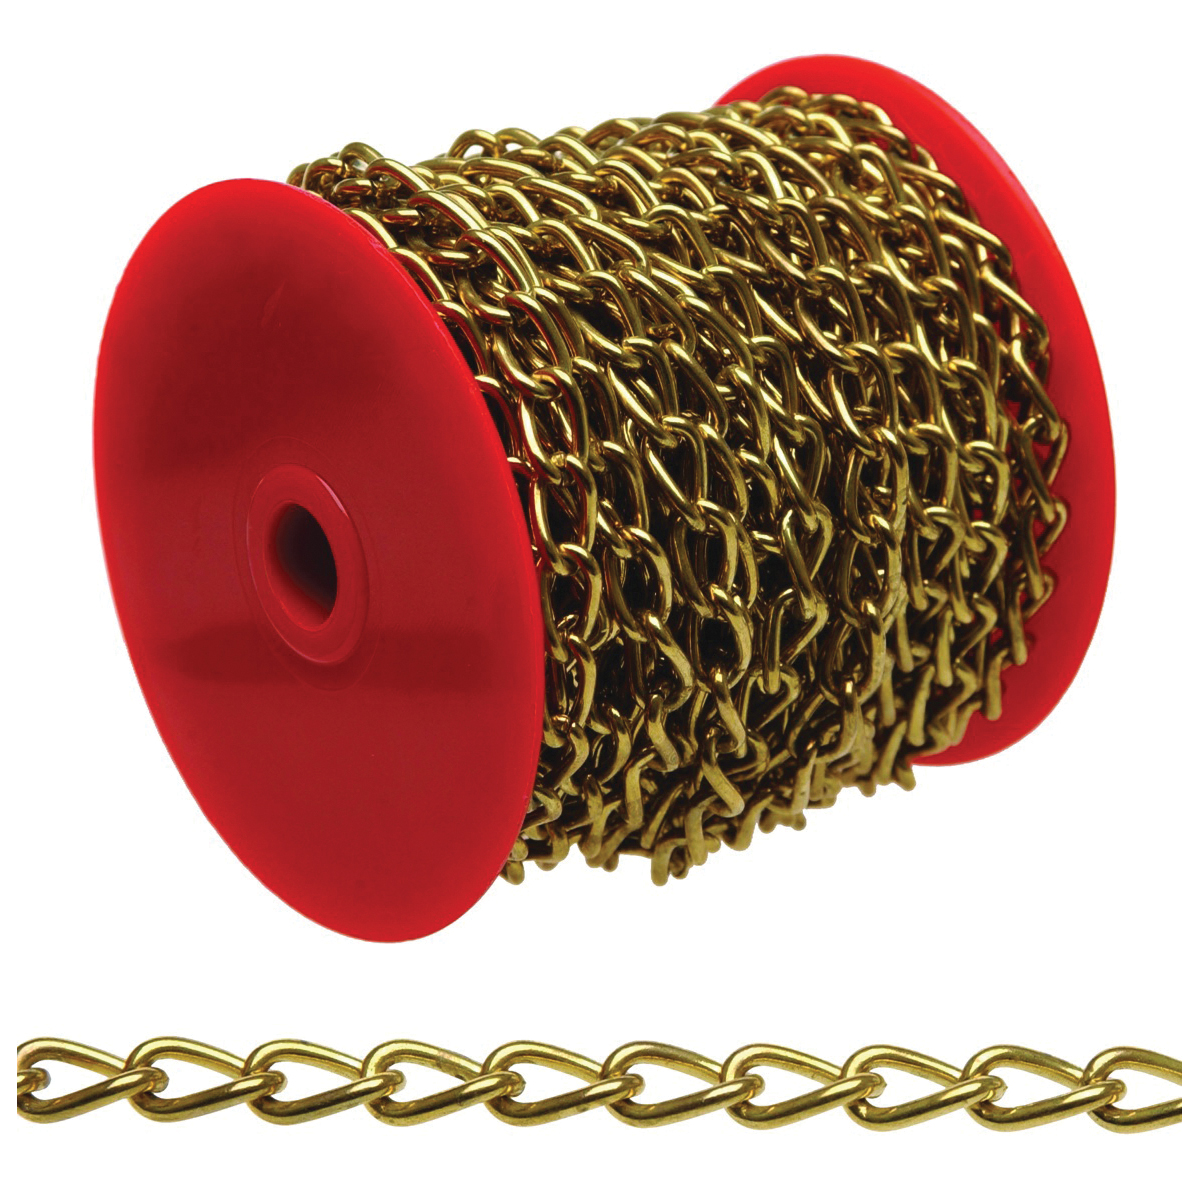 Picture of Campbell 0717017 Twist Chain, #70 Trade, 82 ft L, 5 lb Working Load, Brass, Reel